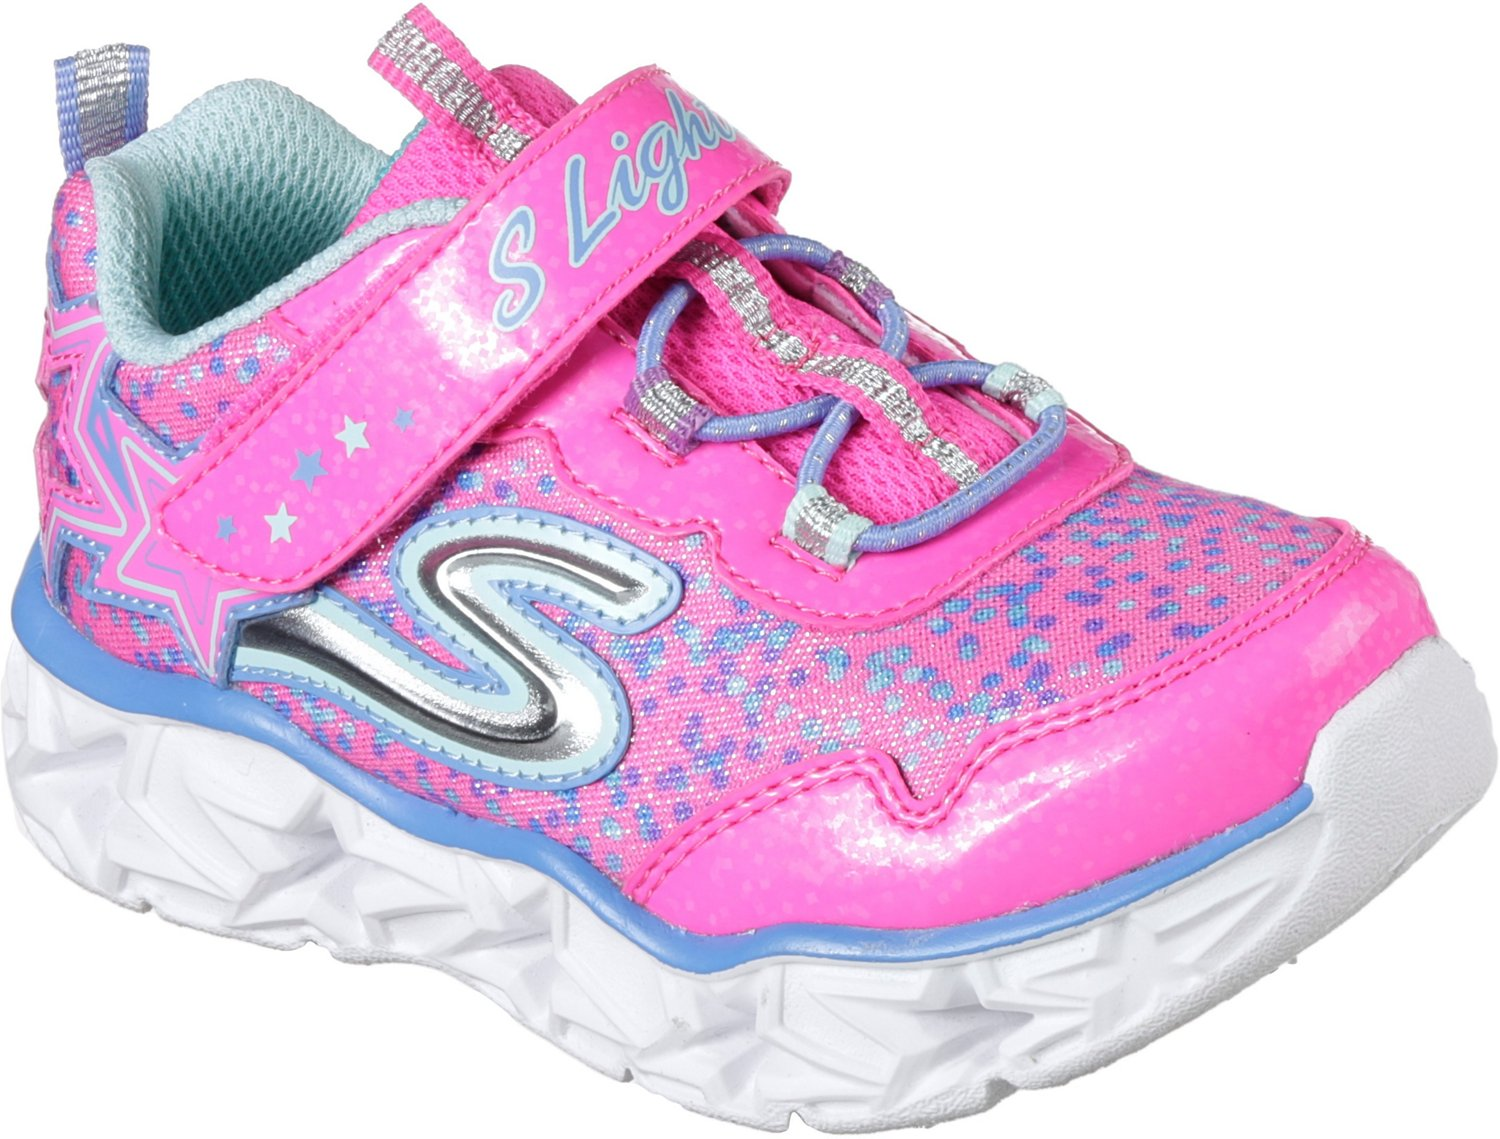 28c8a291a5020 Display product reviews for SKECHERS Toddler Girls  S Lights Galaxy Lights Running  Shoes